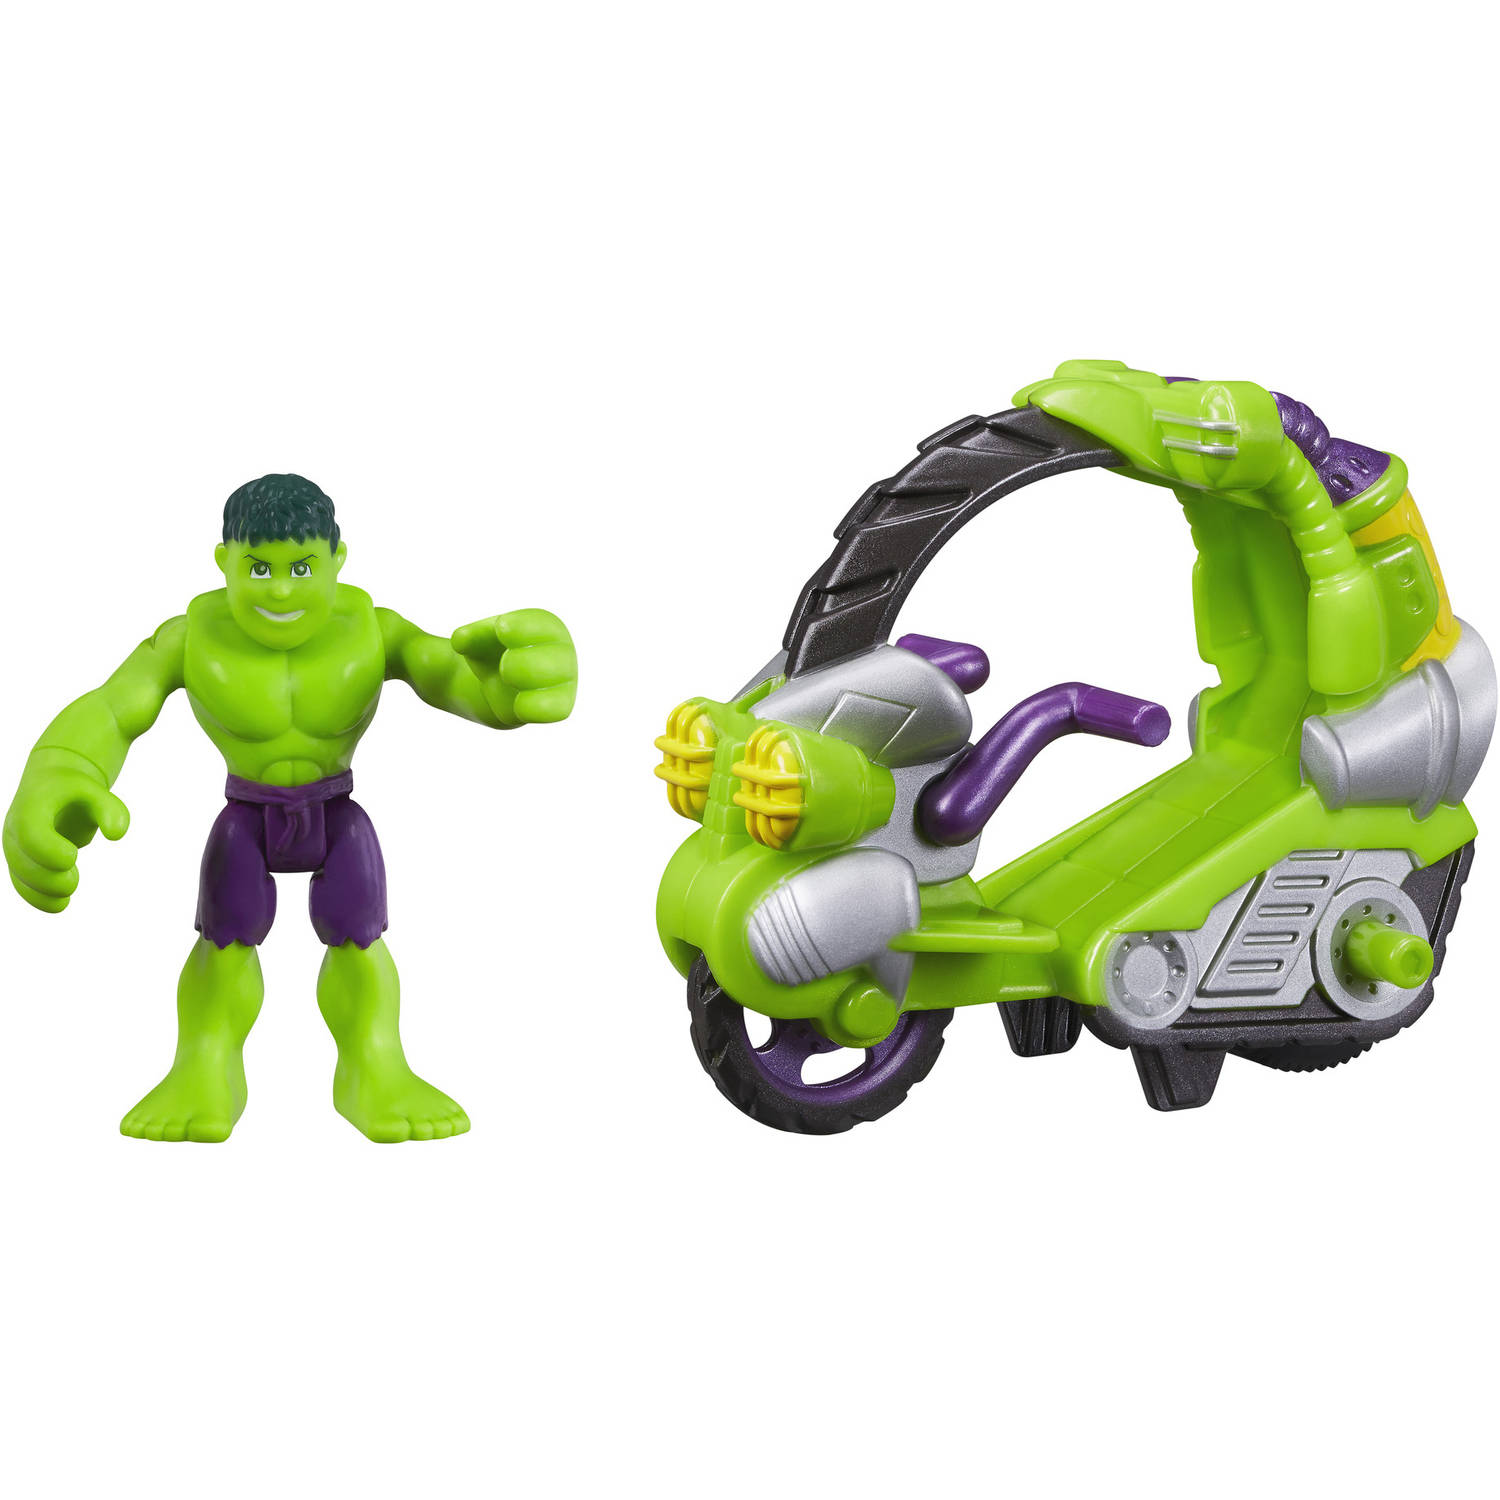 Playskool Heroes Marvel Super Hero Adventures Hulk Figure with Tread Racer Vehicle by Playskool